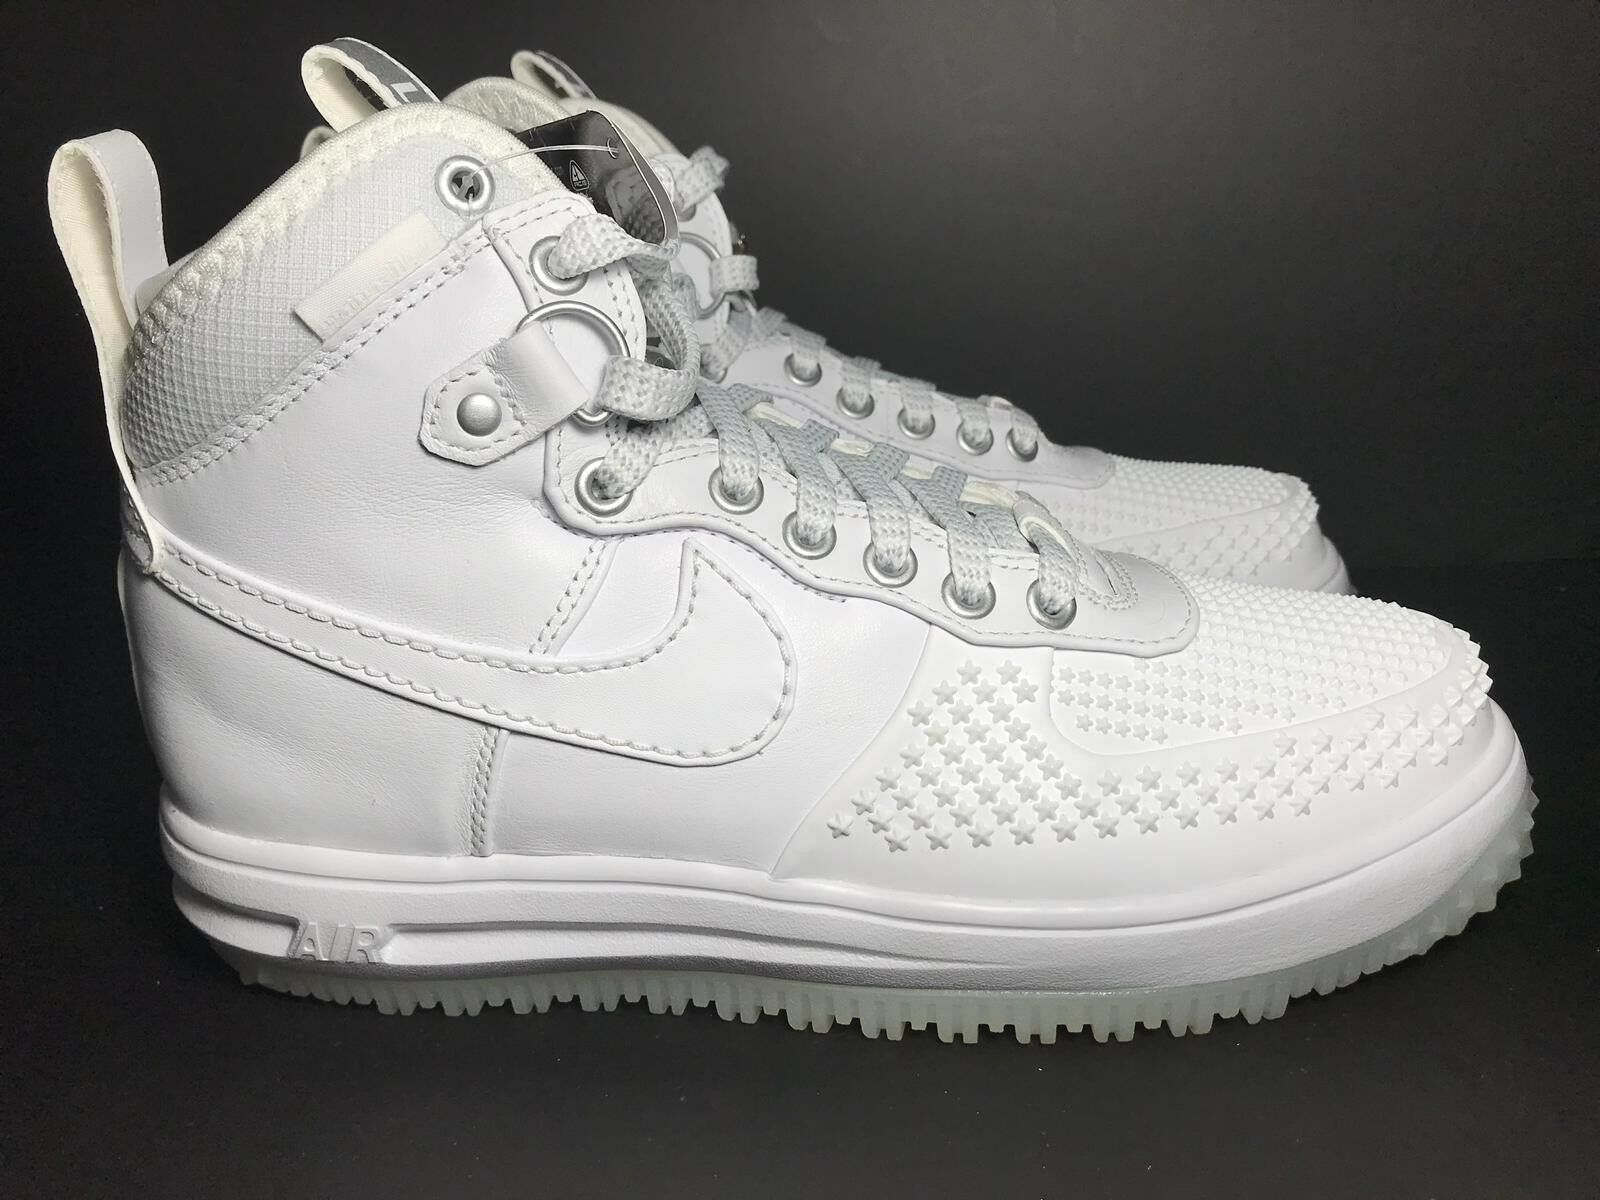 best website 2698c 7b531 Nike Lunar Force 1 Duckboot - White White White White 805899 101- Men s  Size 7